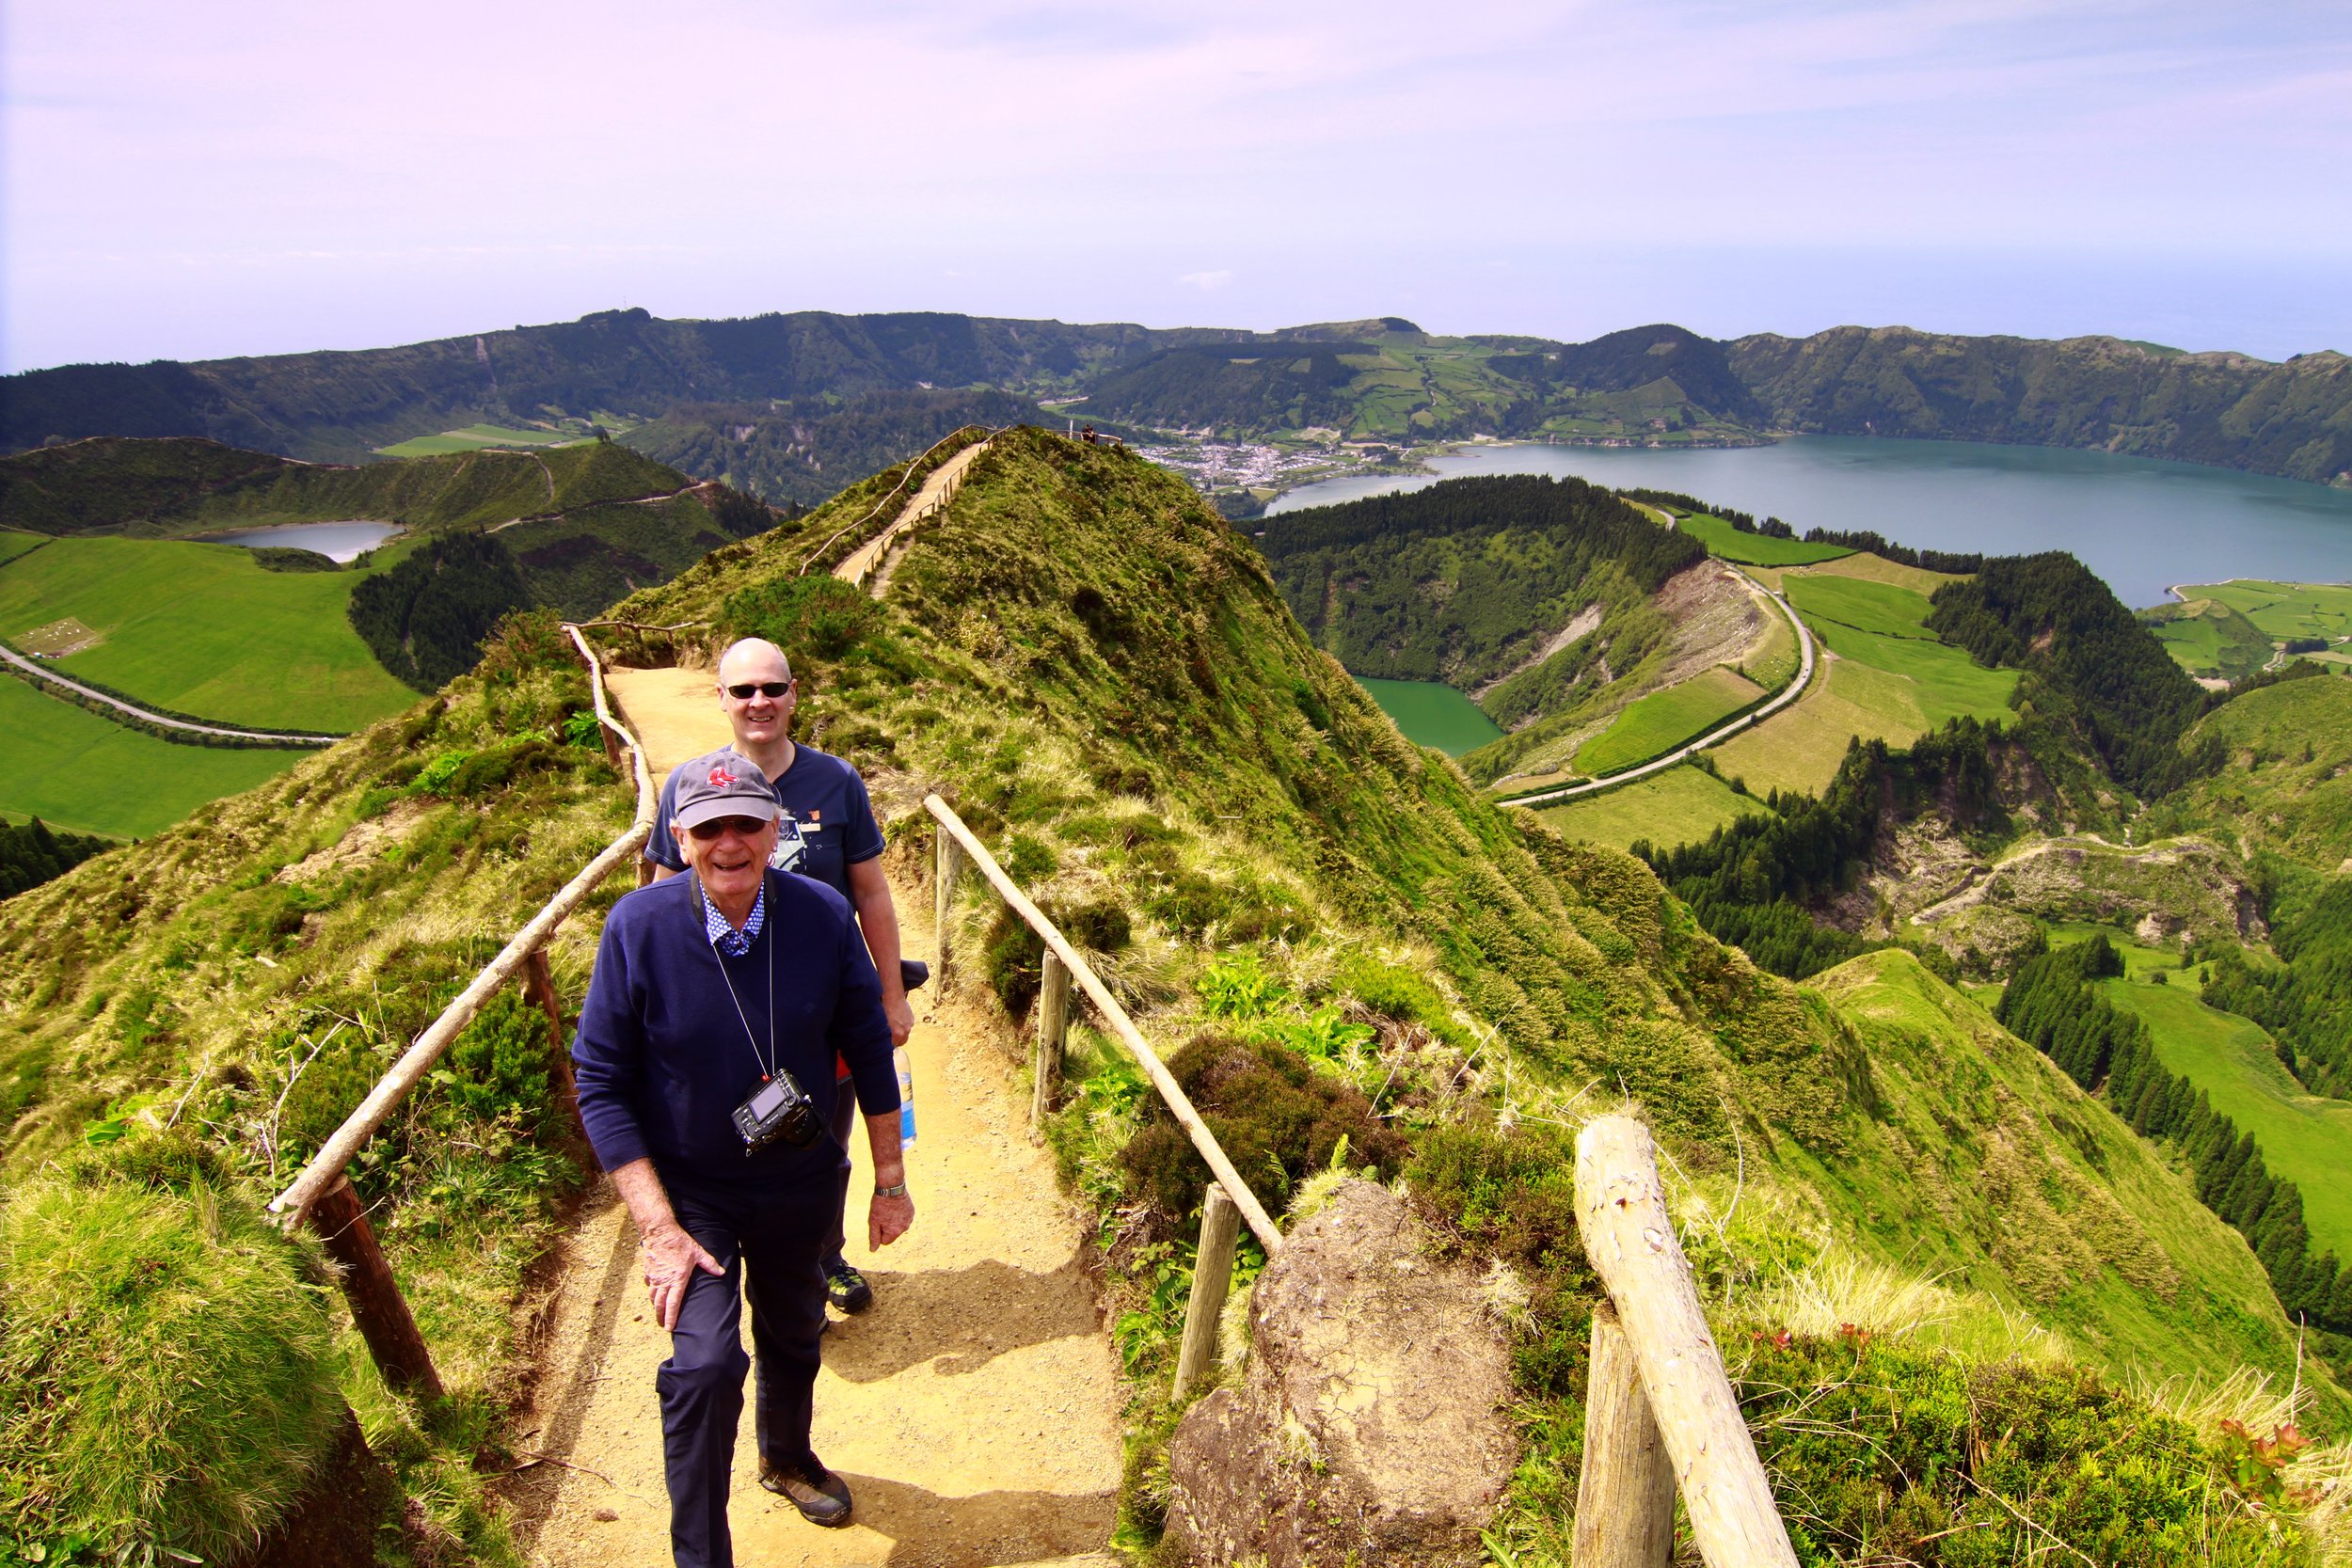 Boca do inferno, Sete Cidades - Azores Connections.jpg